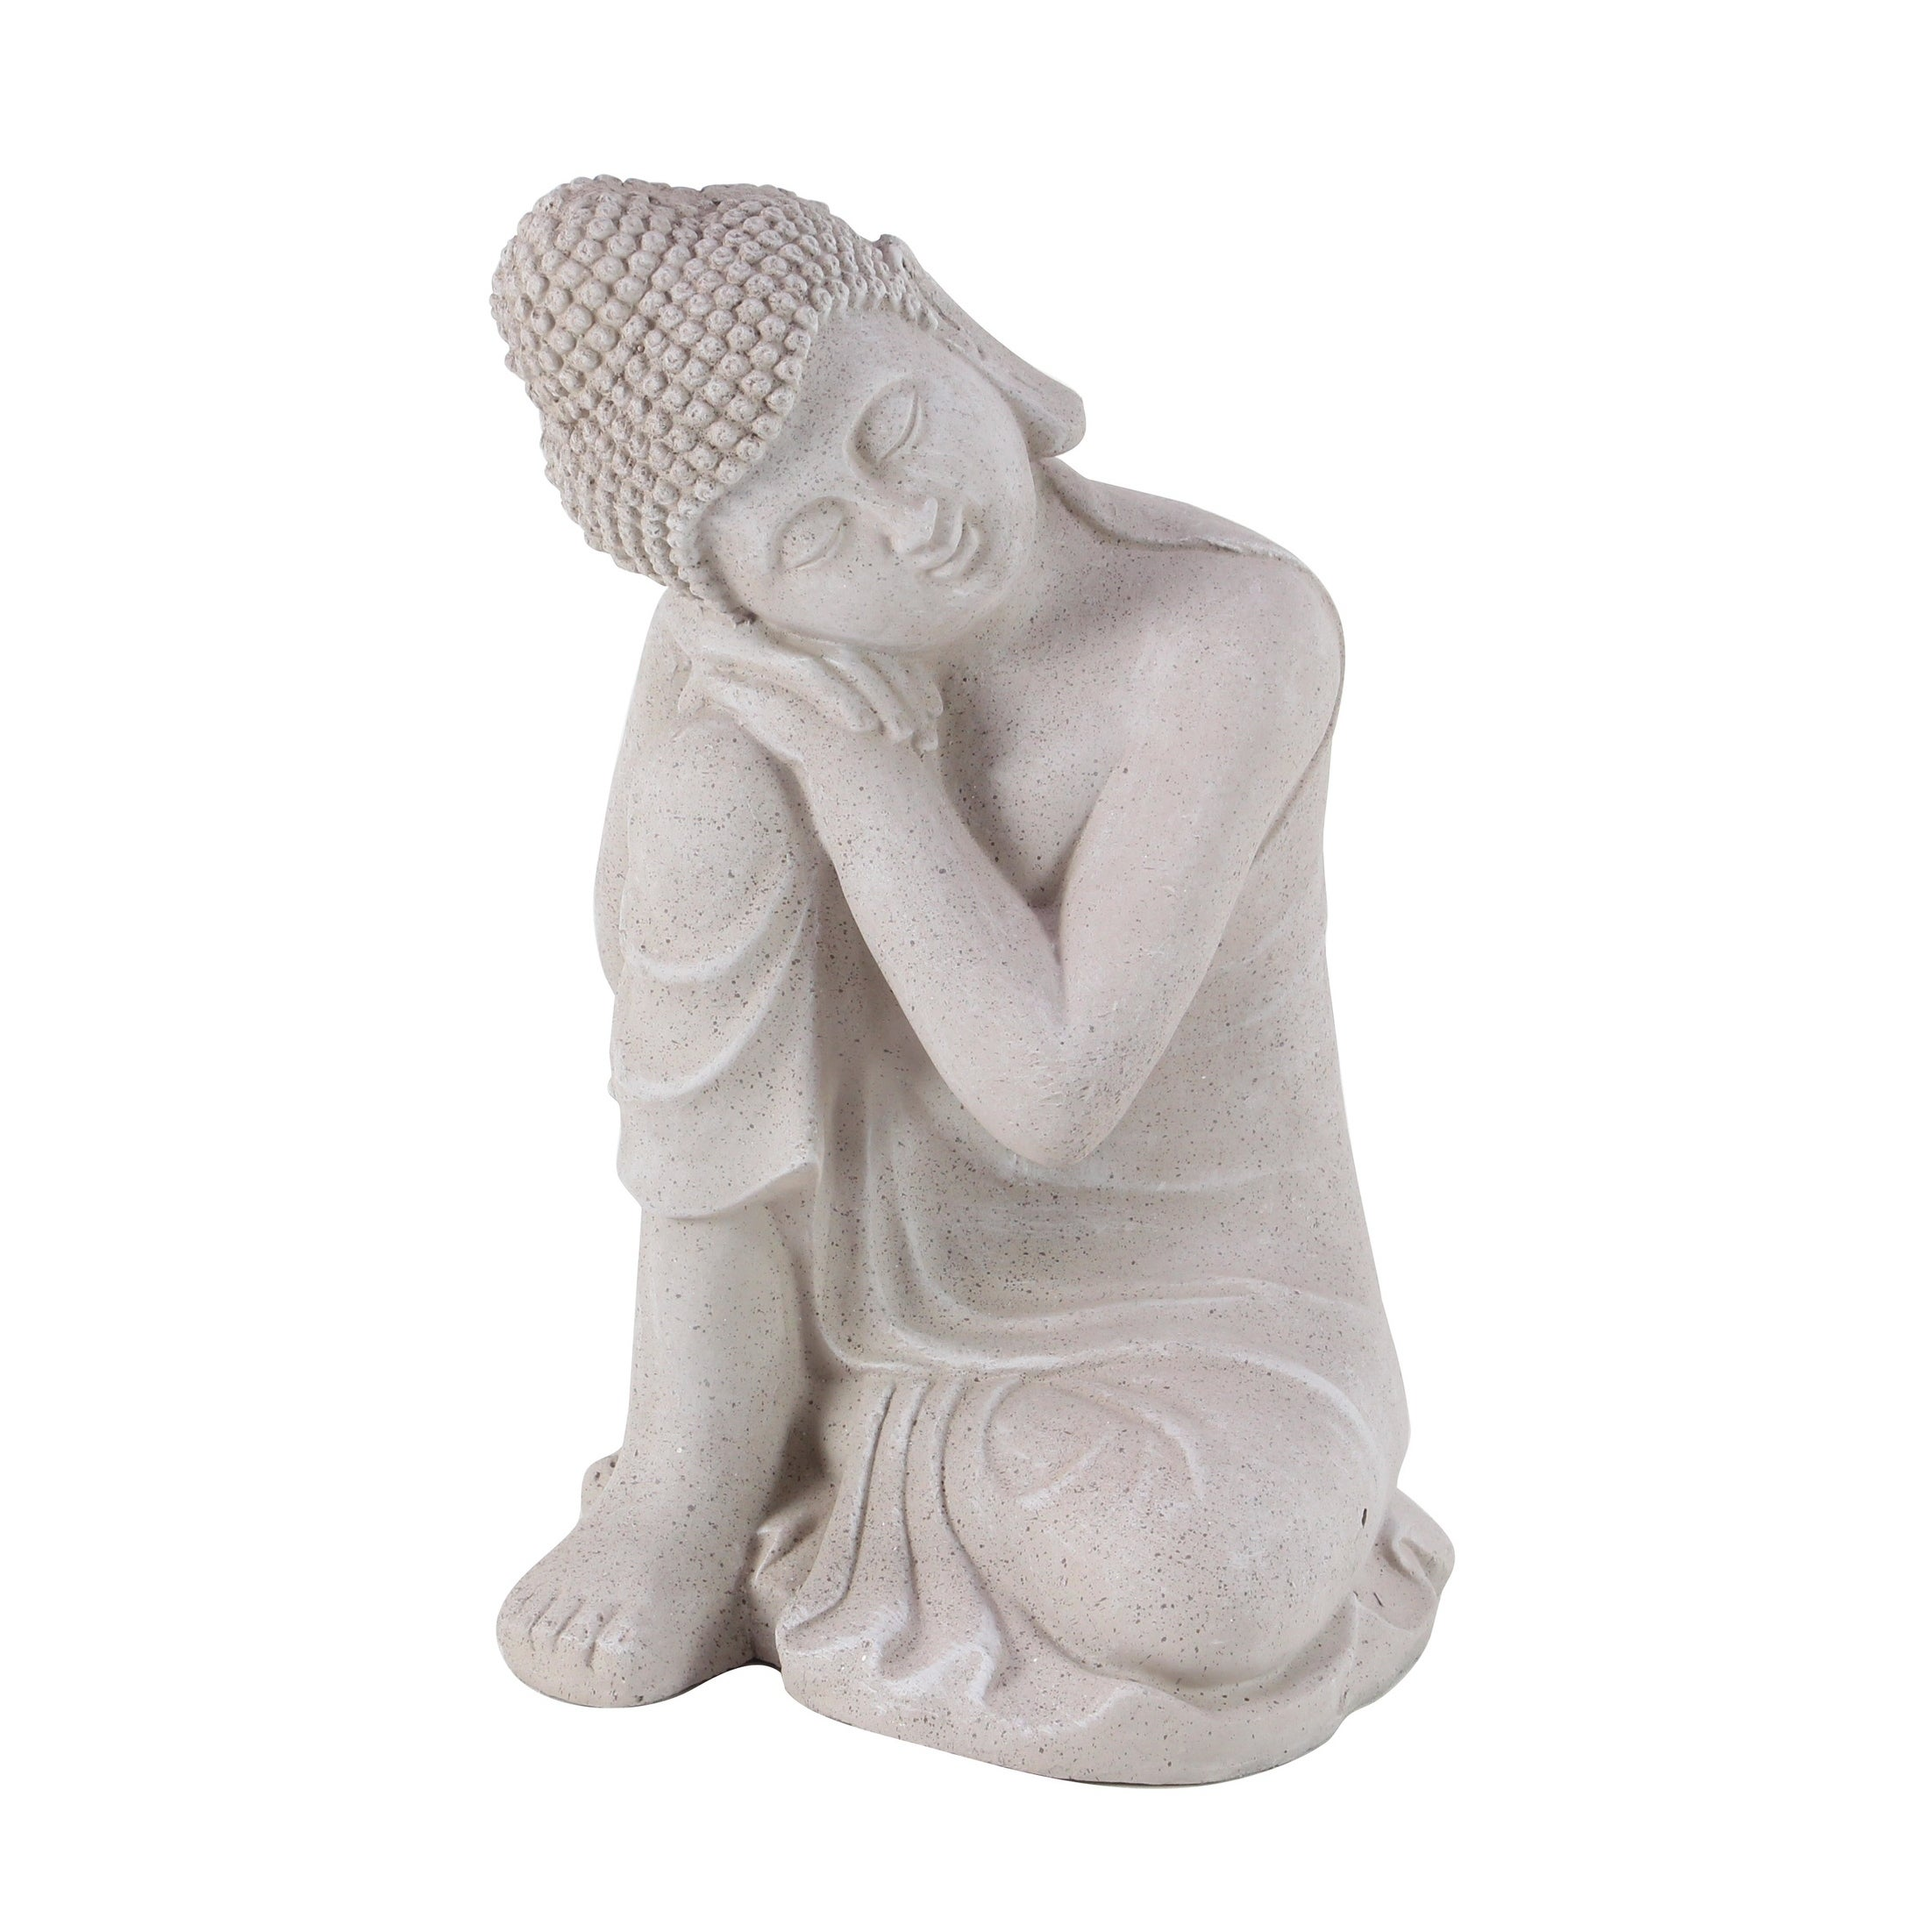 Contemporary 20 X 13 Inch Resin Sitting Buddha Sculpture On Sale Overstock 20459892